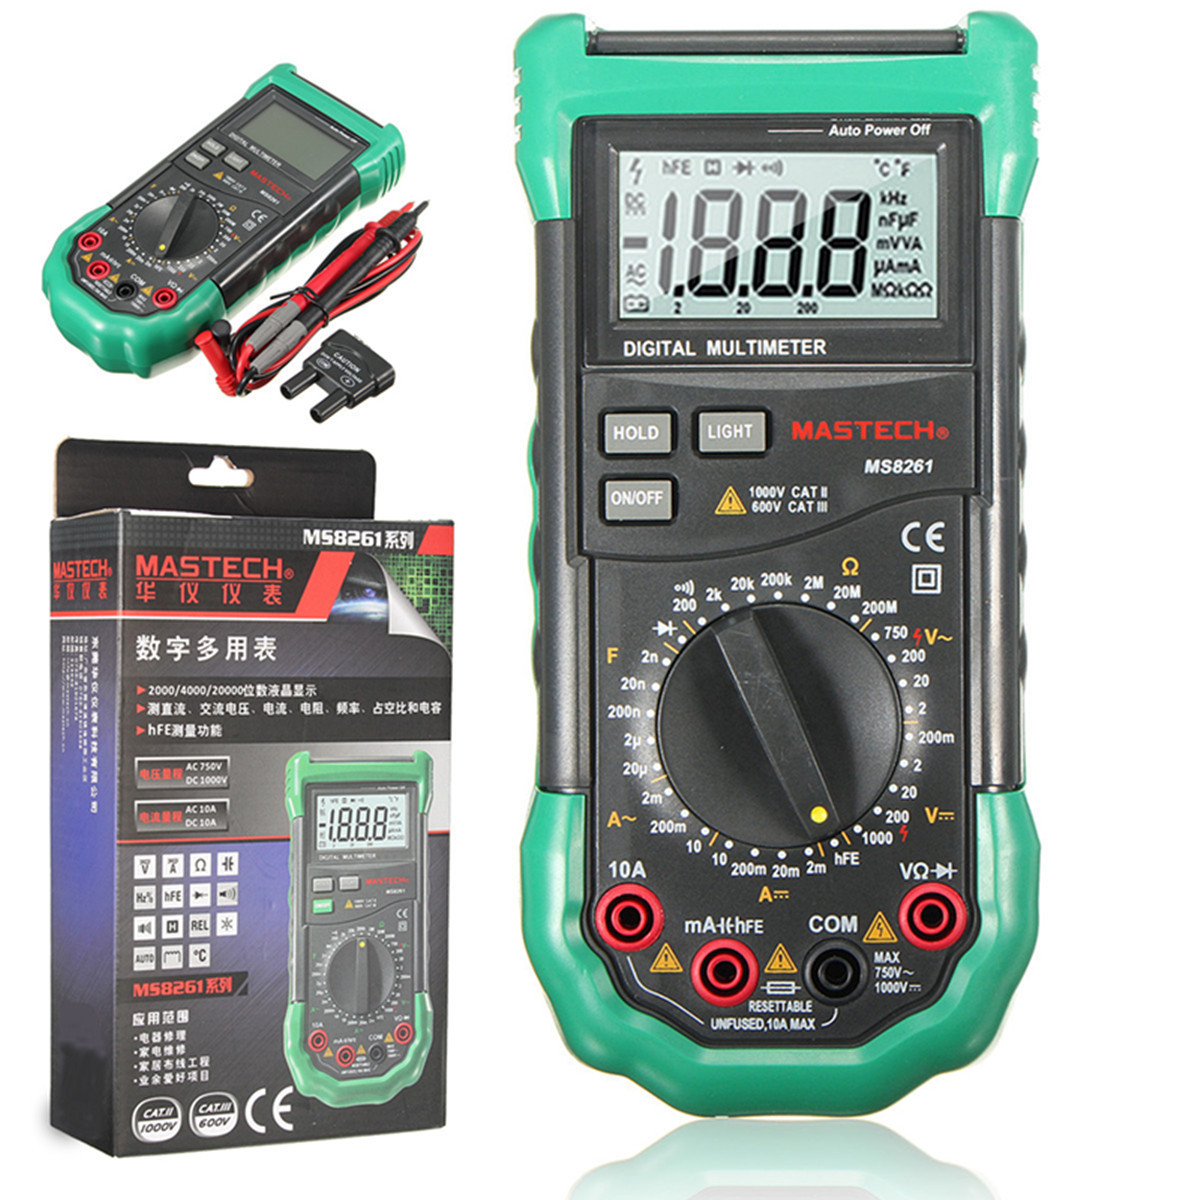 MASTECH MS8261 Handheld LCD DMM Digital Multimeters AC/DC Volt Amp hFE Test